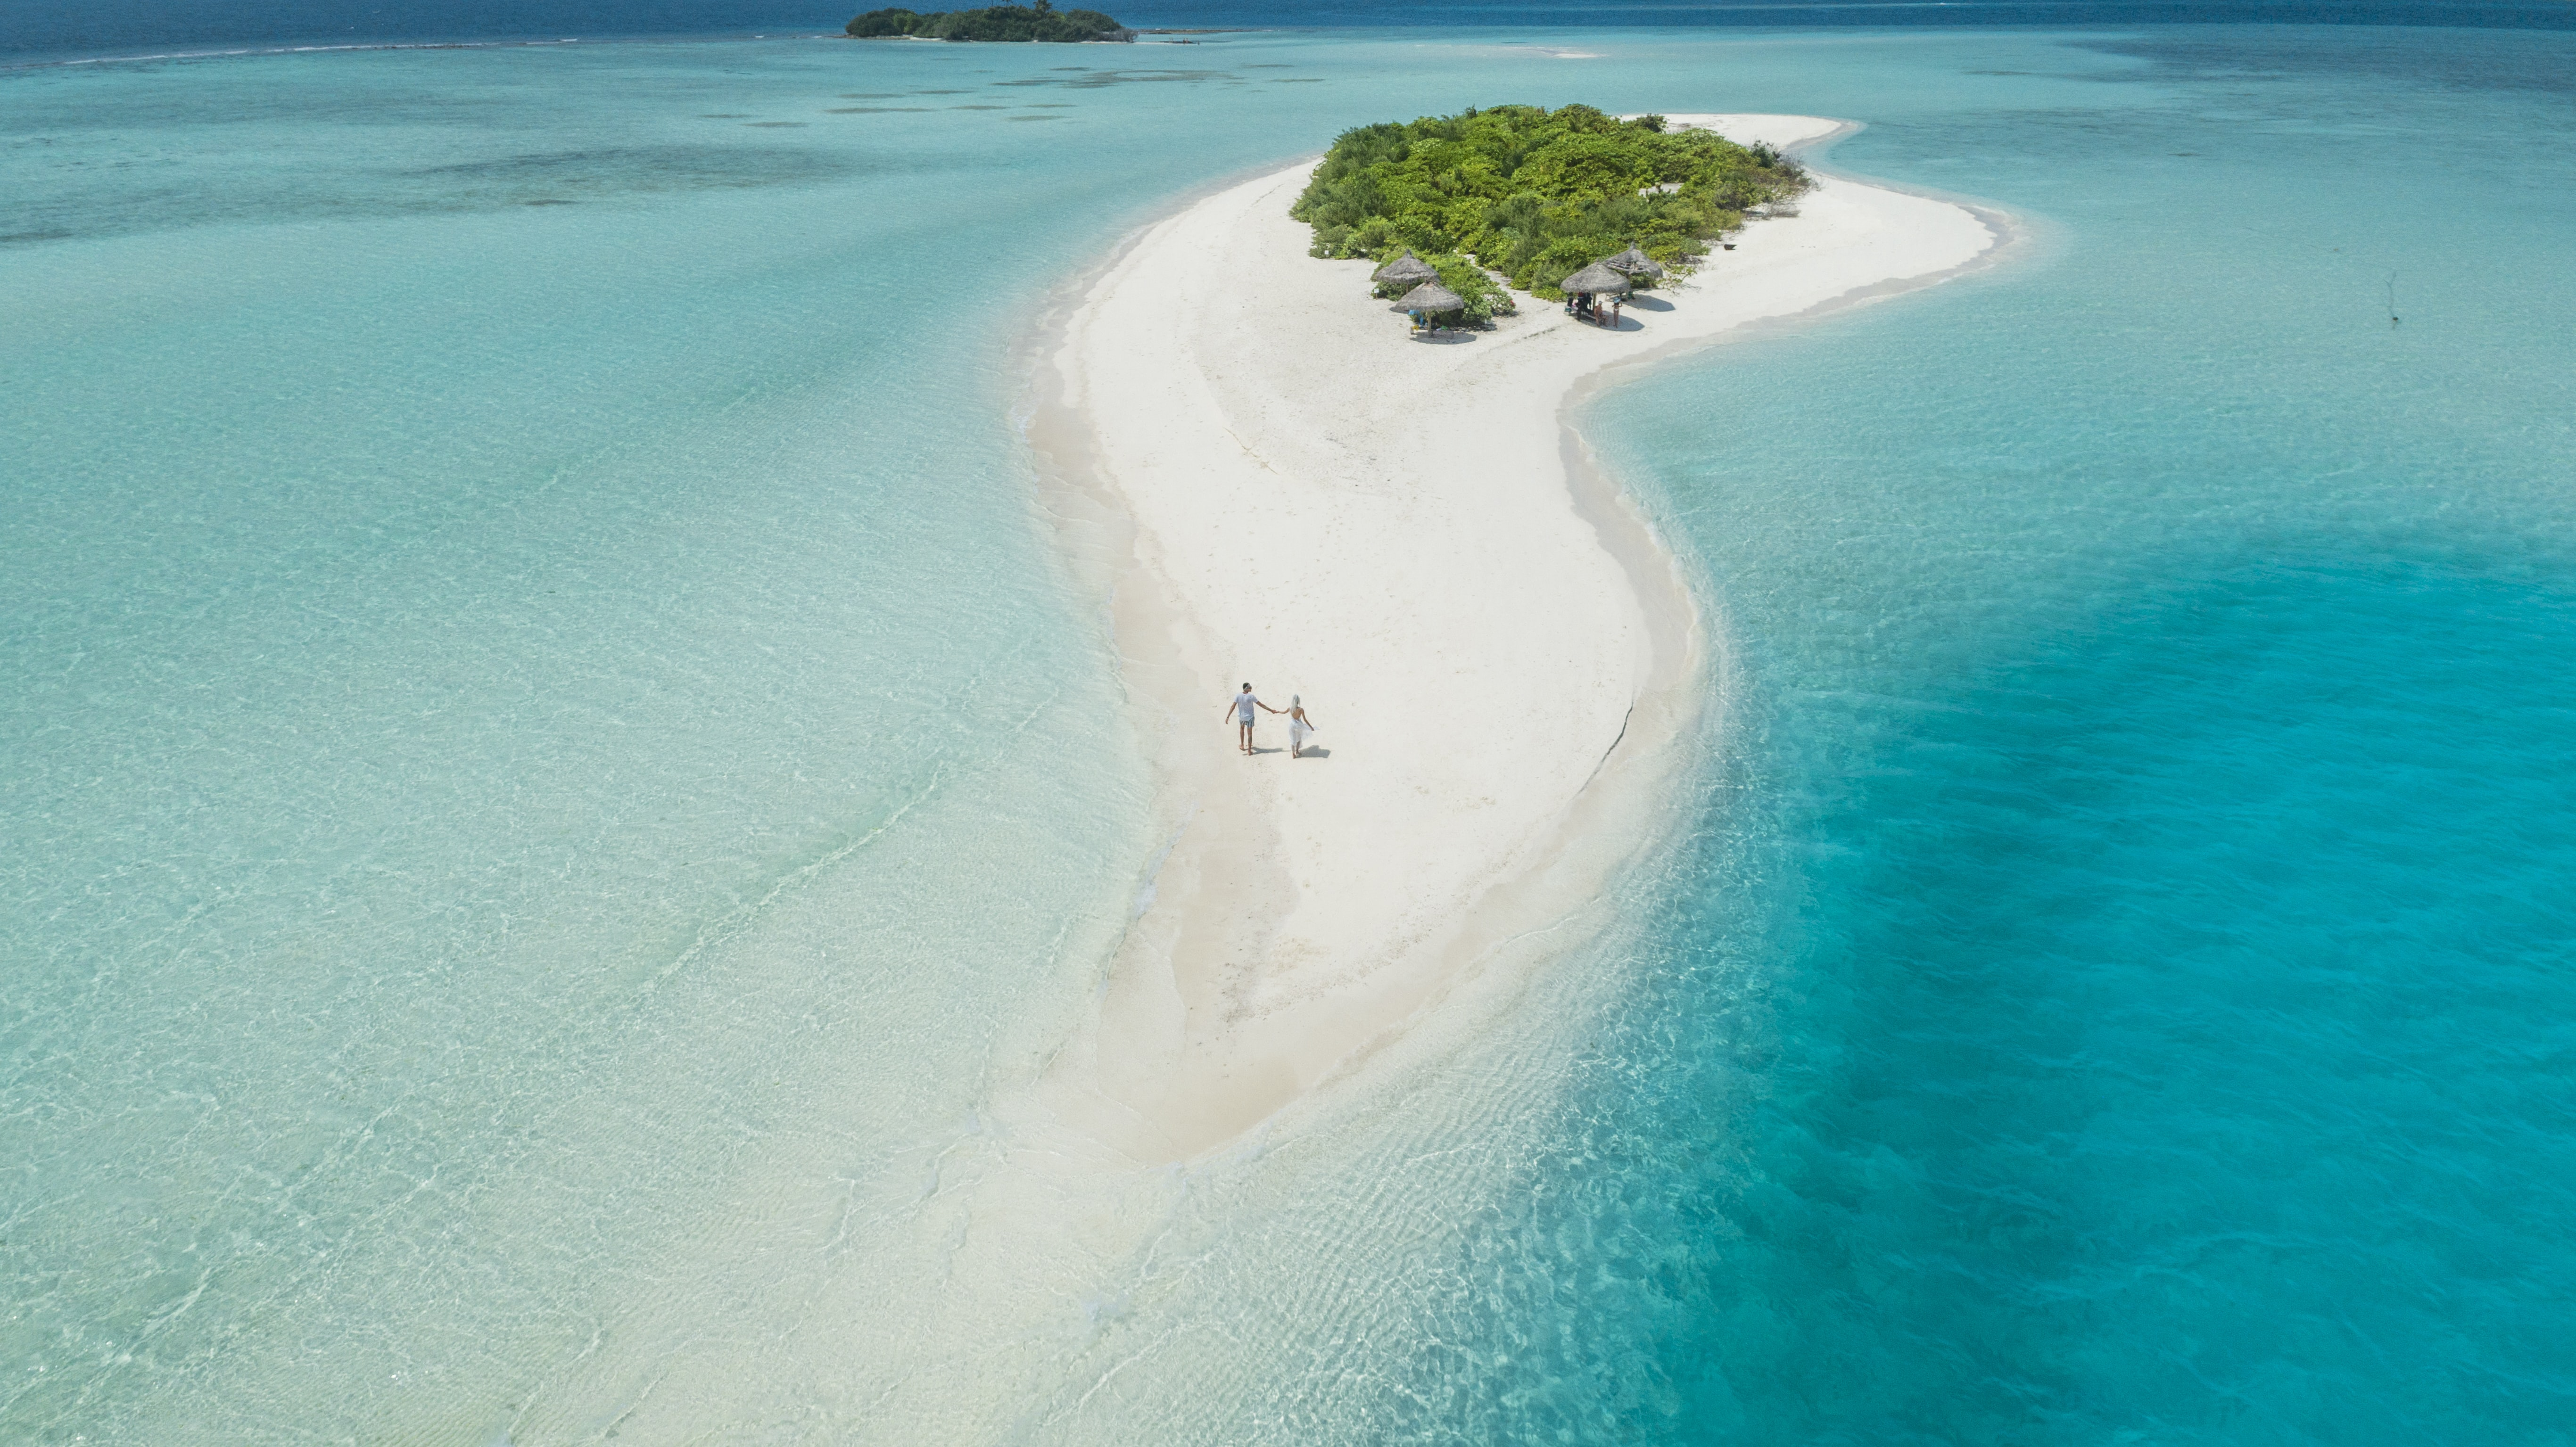 A couple walks hand-in-hand on a beautiful deserted beach in the Maldives